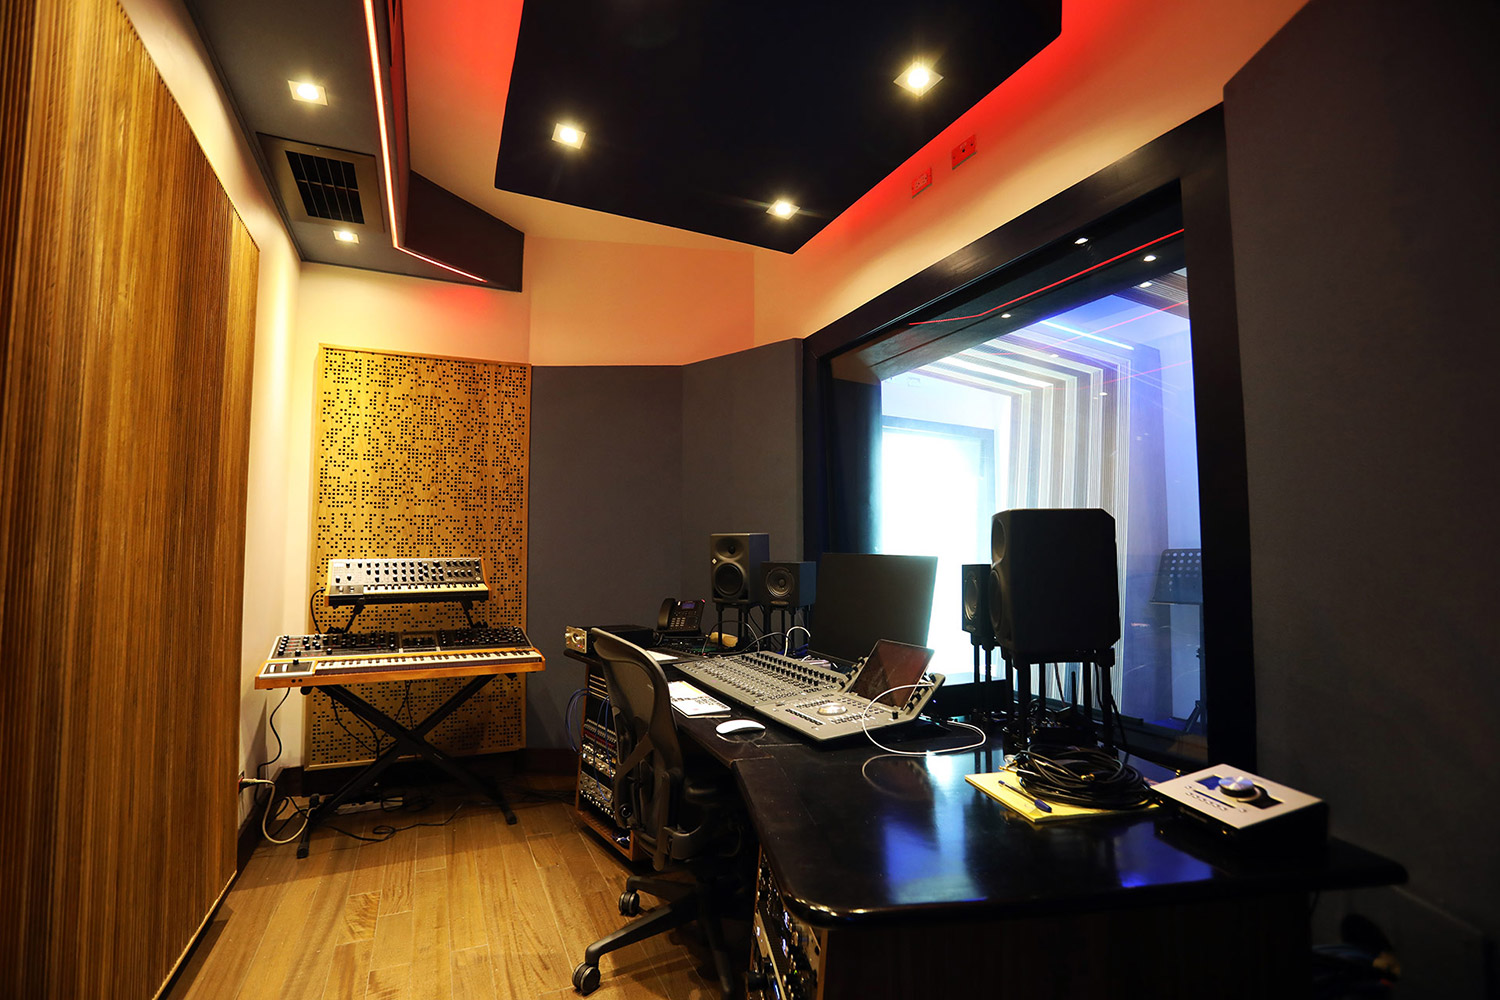 FAMA Studio owner Luis Betances retained WSDG Latin for an acoustic and aesthetic studio design to create a dream recording studio that meets his production needs in Santo Domingo, Dominican Republic. Control Room C.